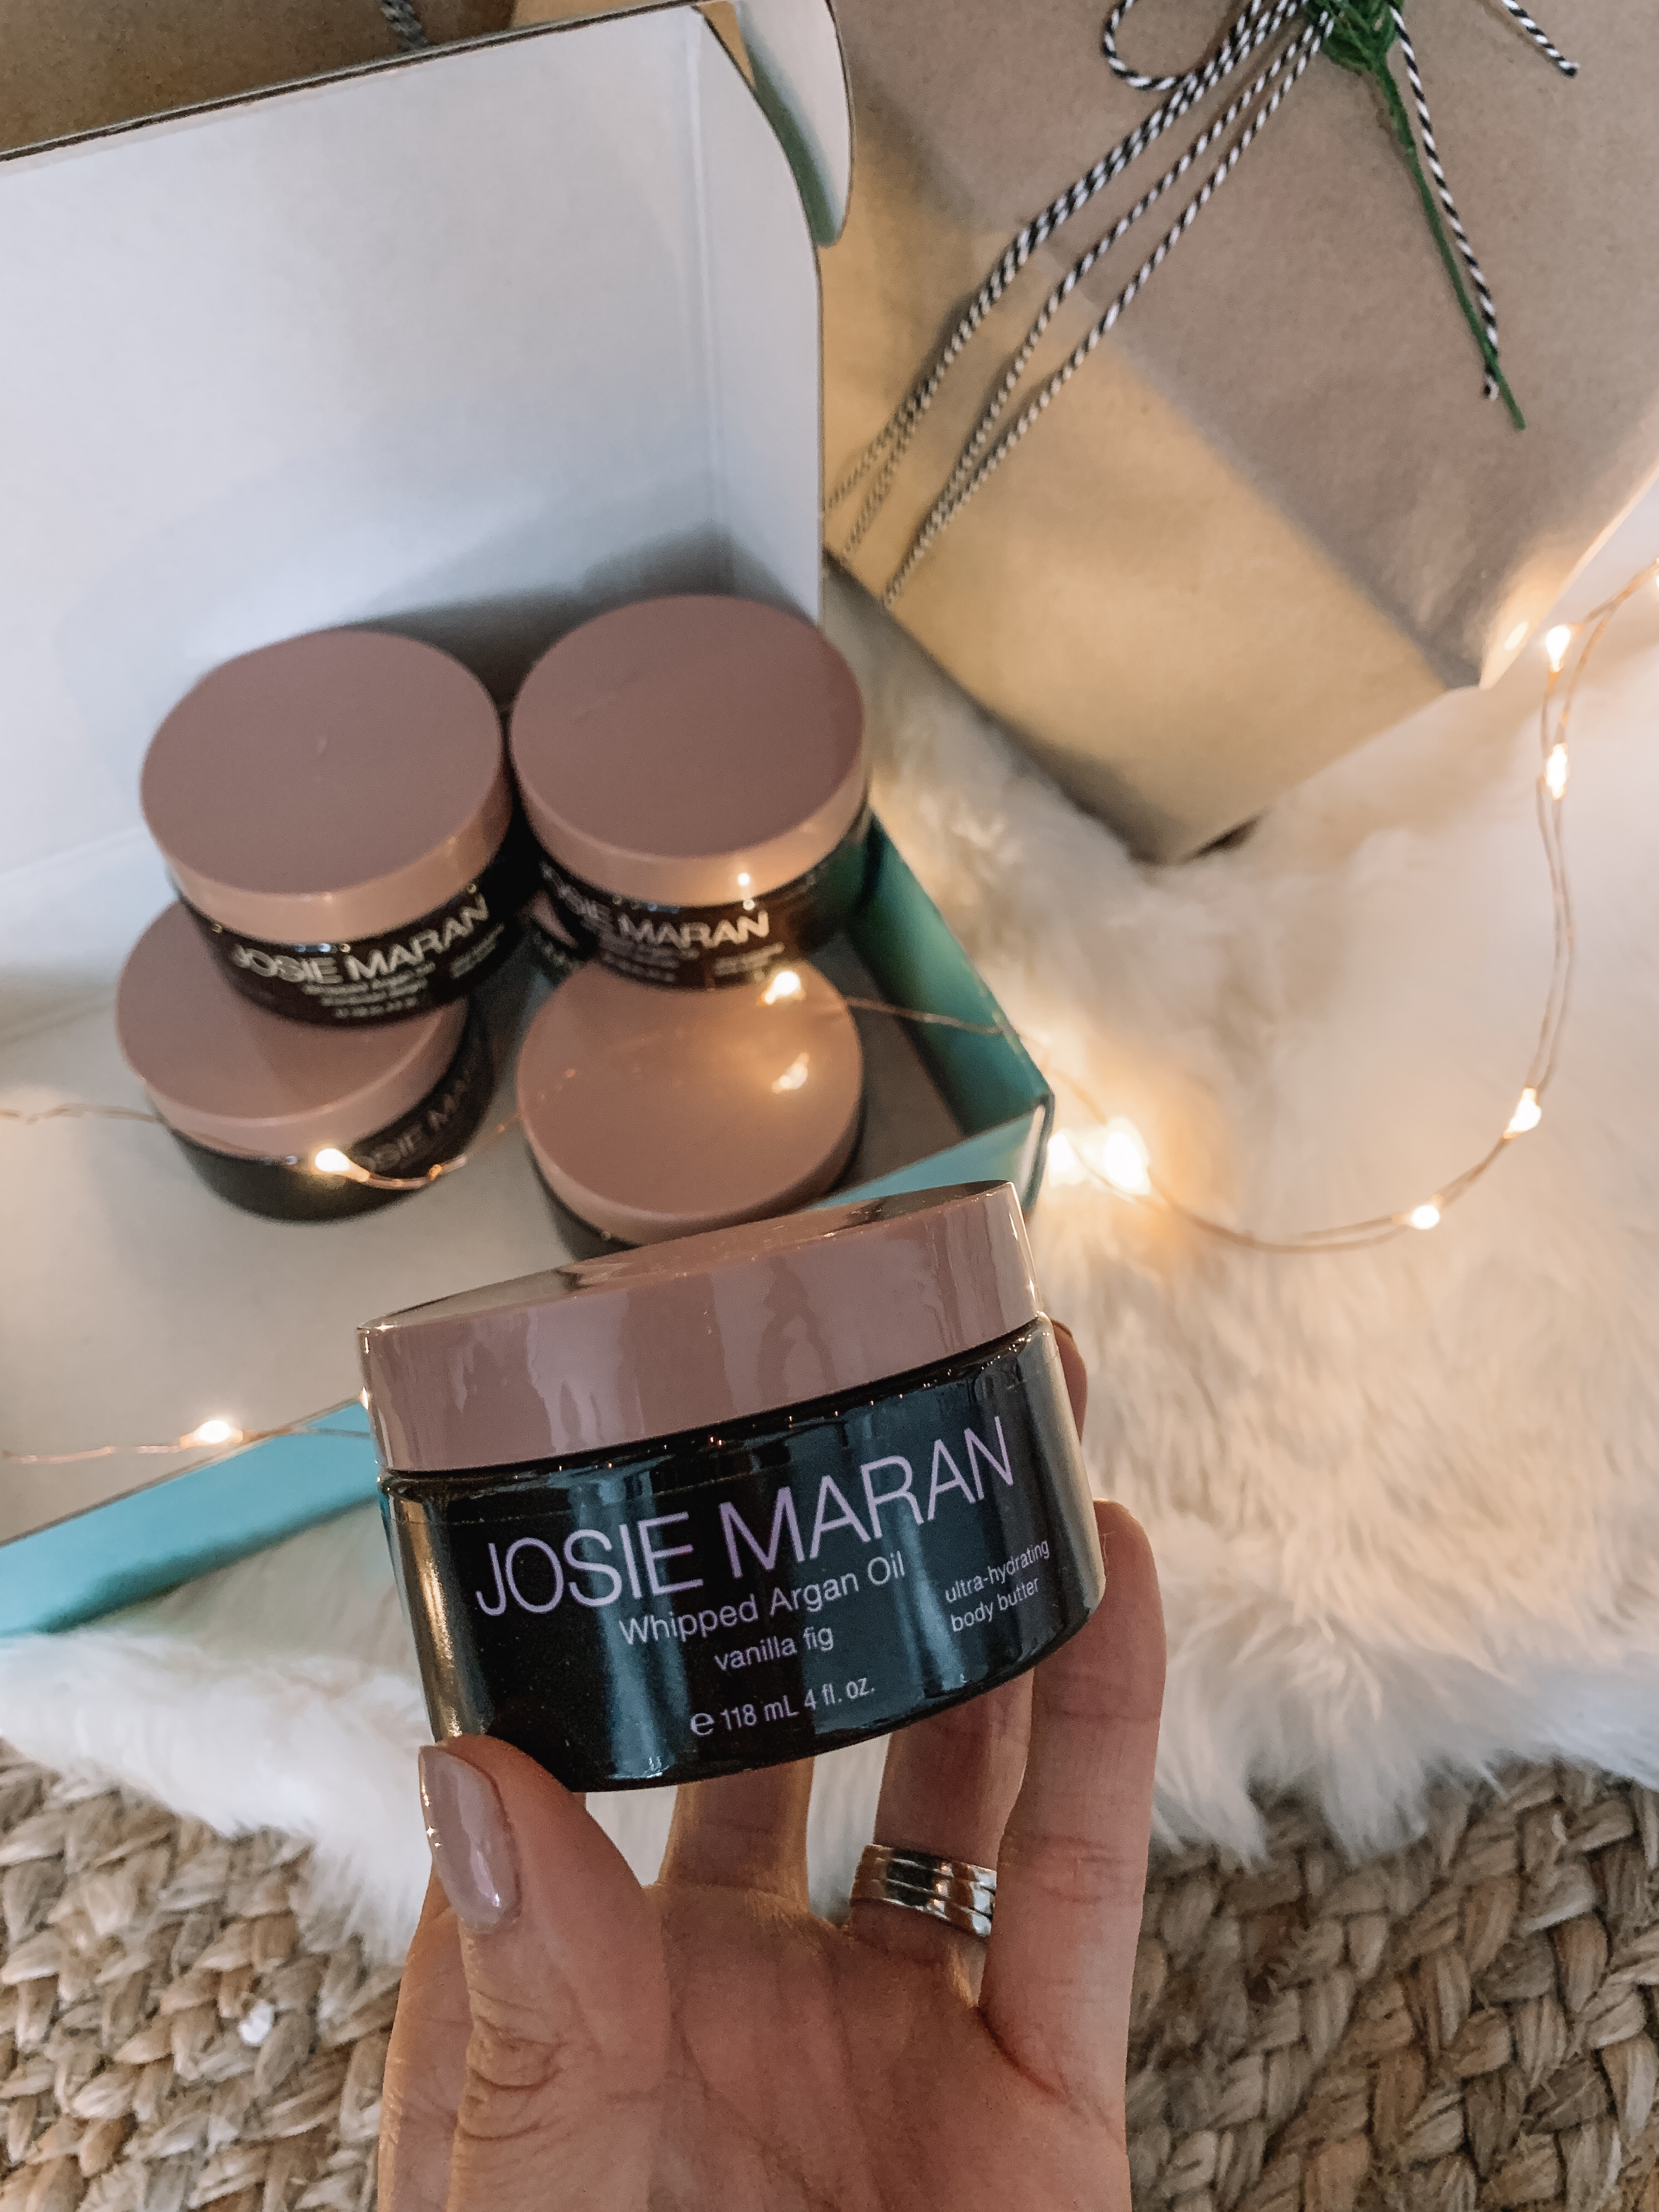 Josie Maran whipped argan oil body butter gift set 6 piece, gifts for her, best of QVC gift guide, stocking stuffers, sale